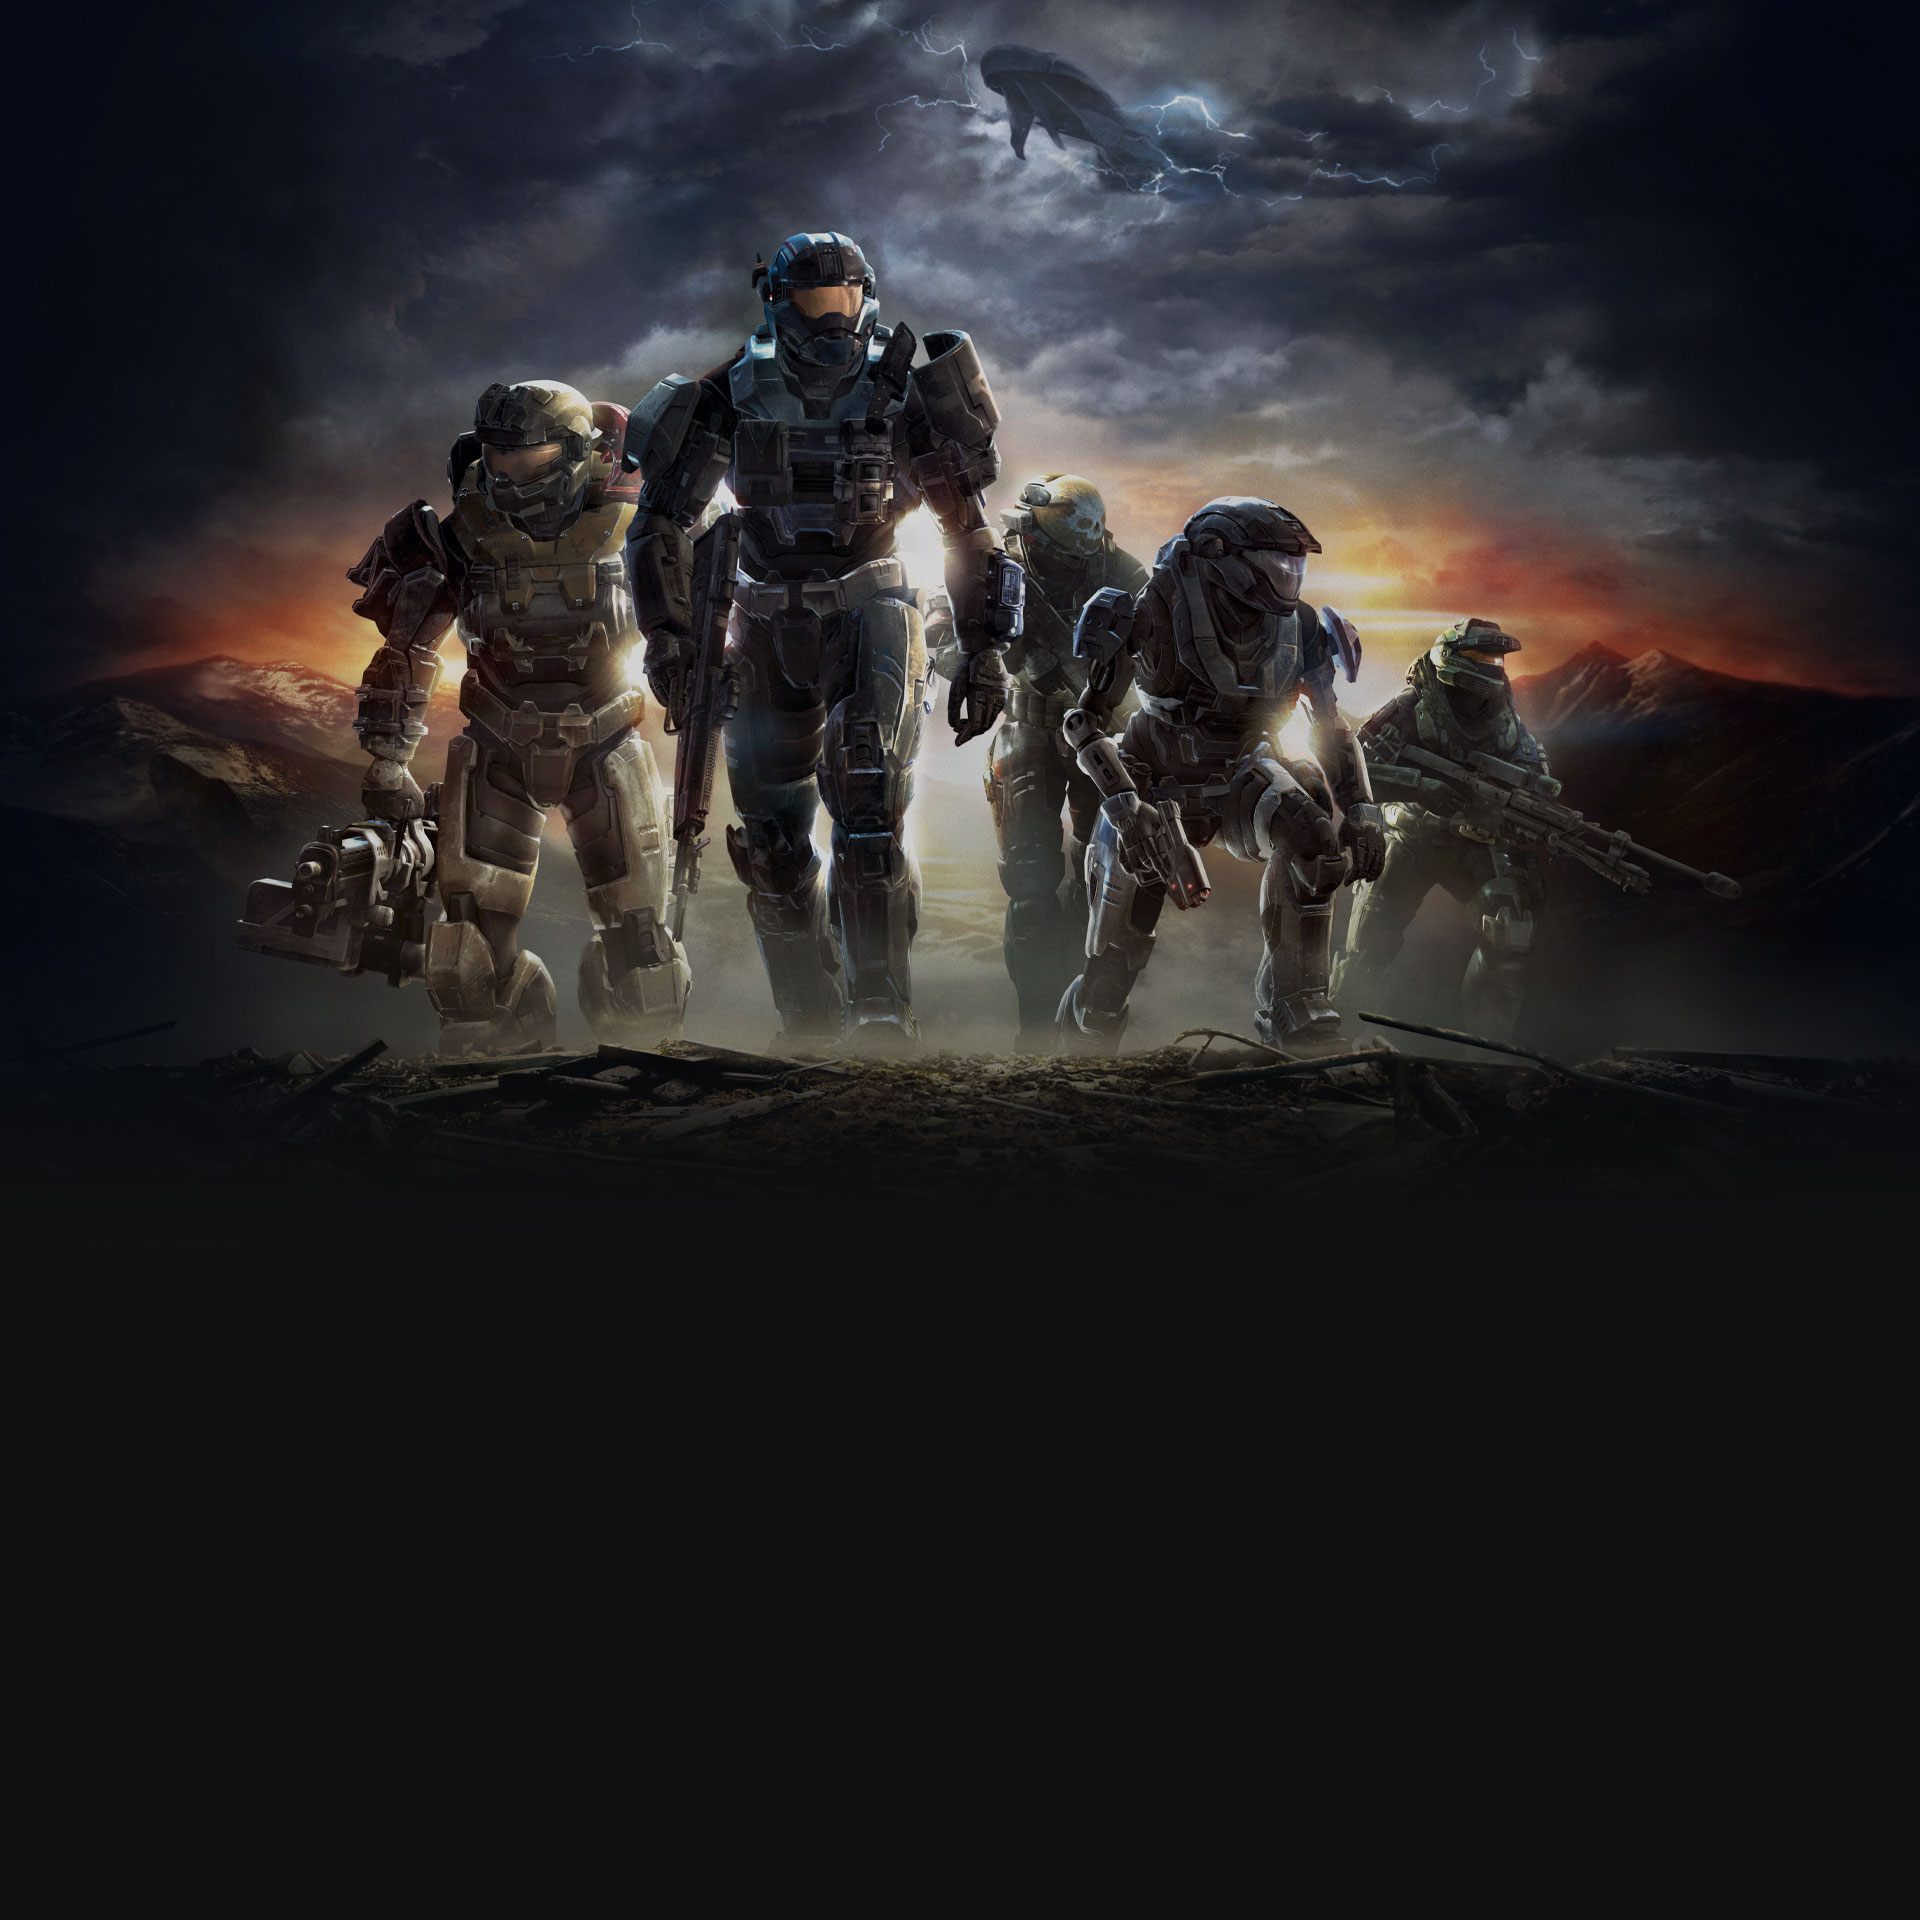 Halo: Reach, Spartans posing on a hill with guns drawn